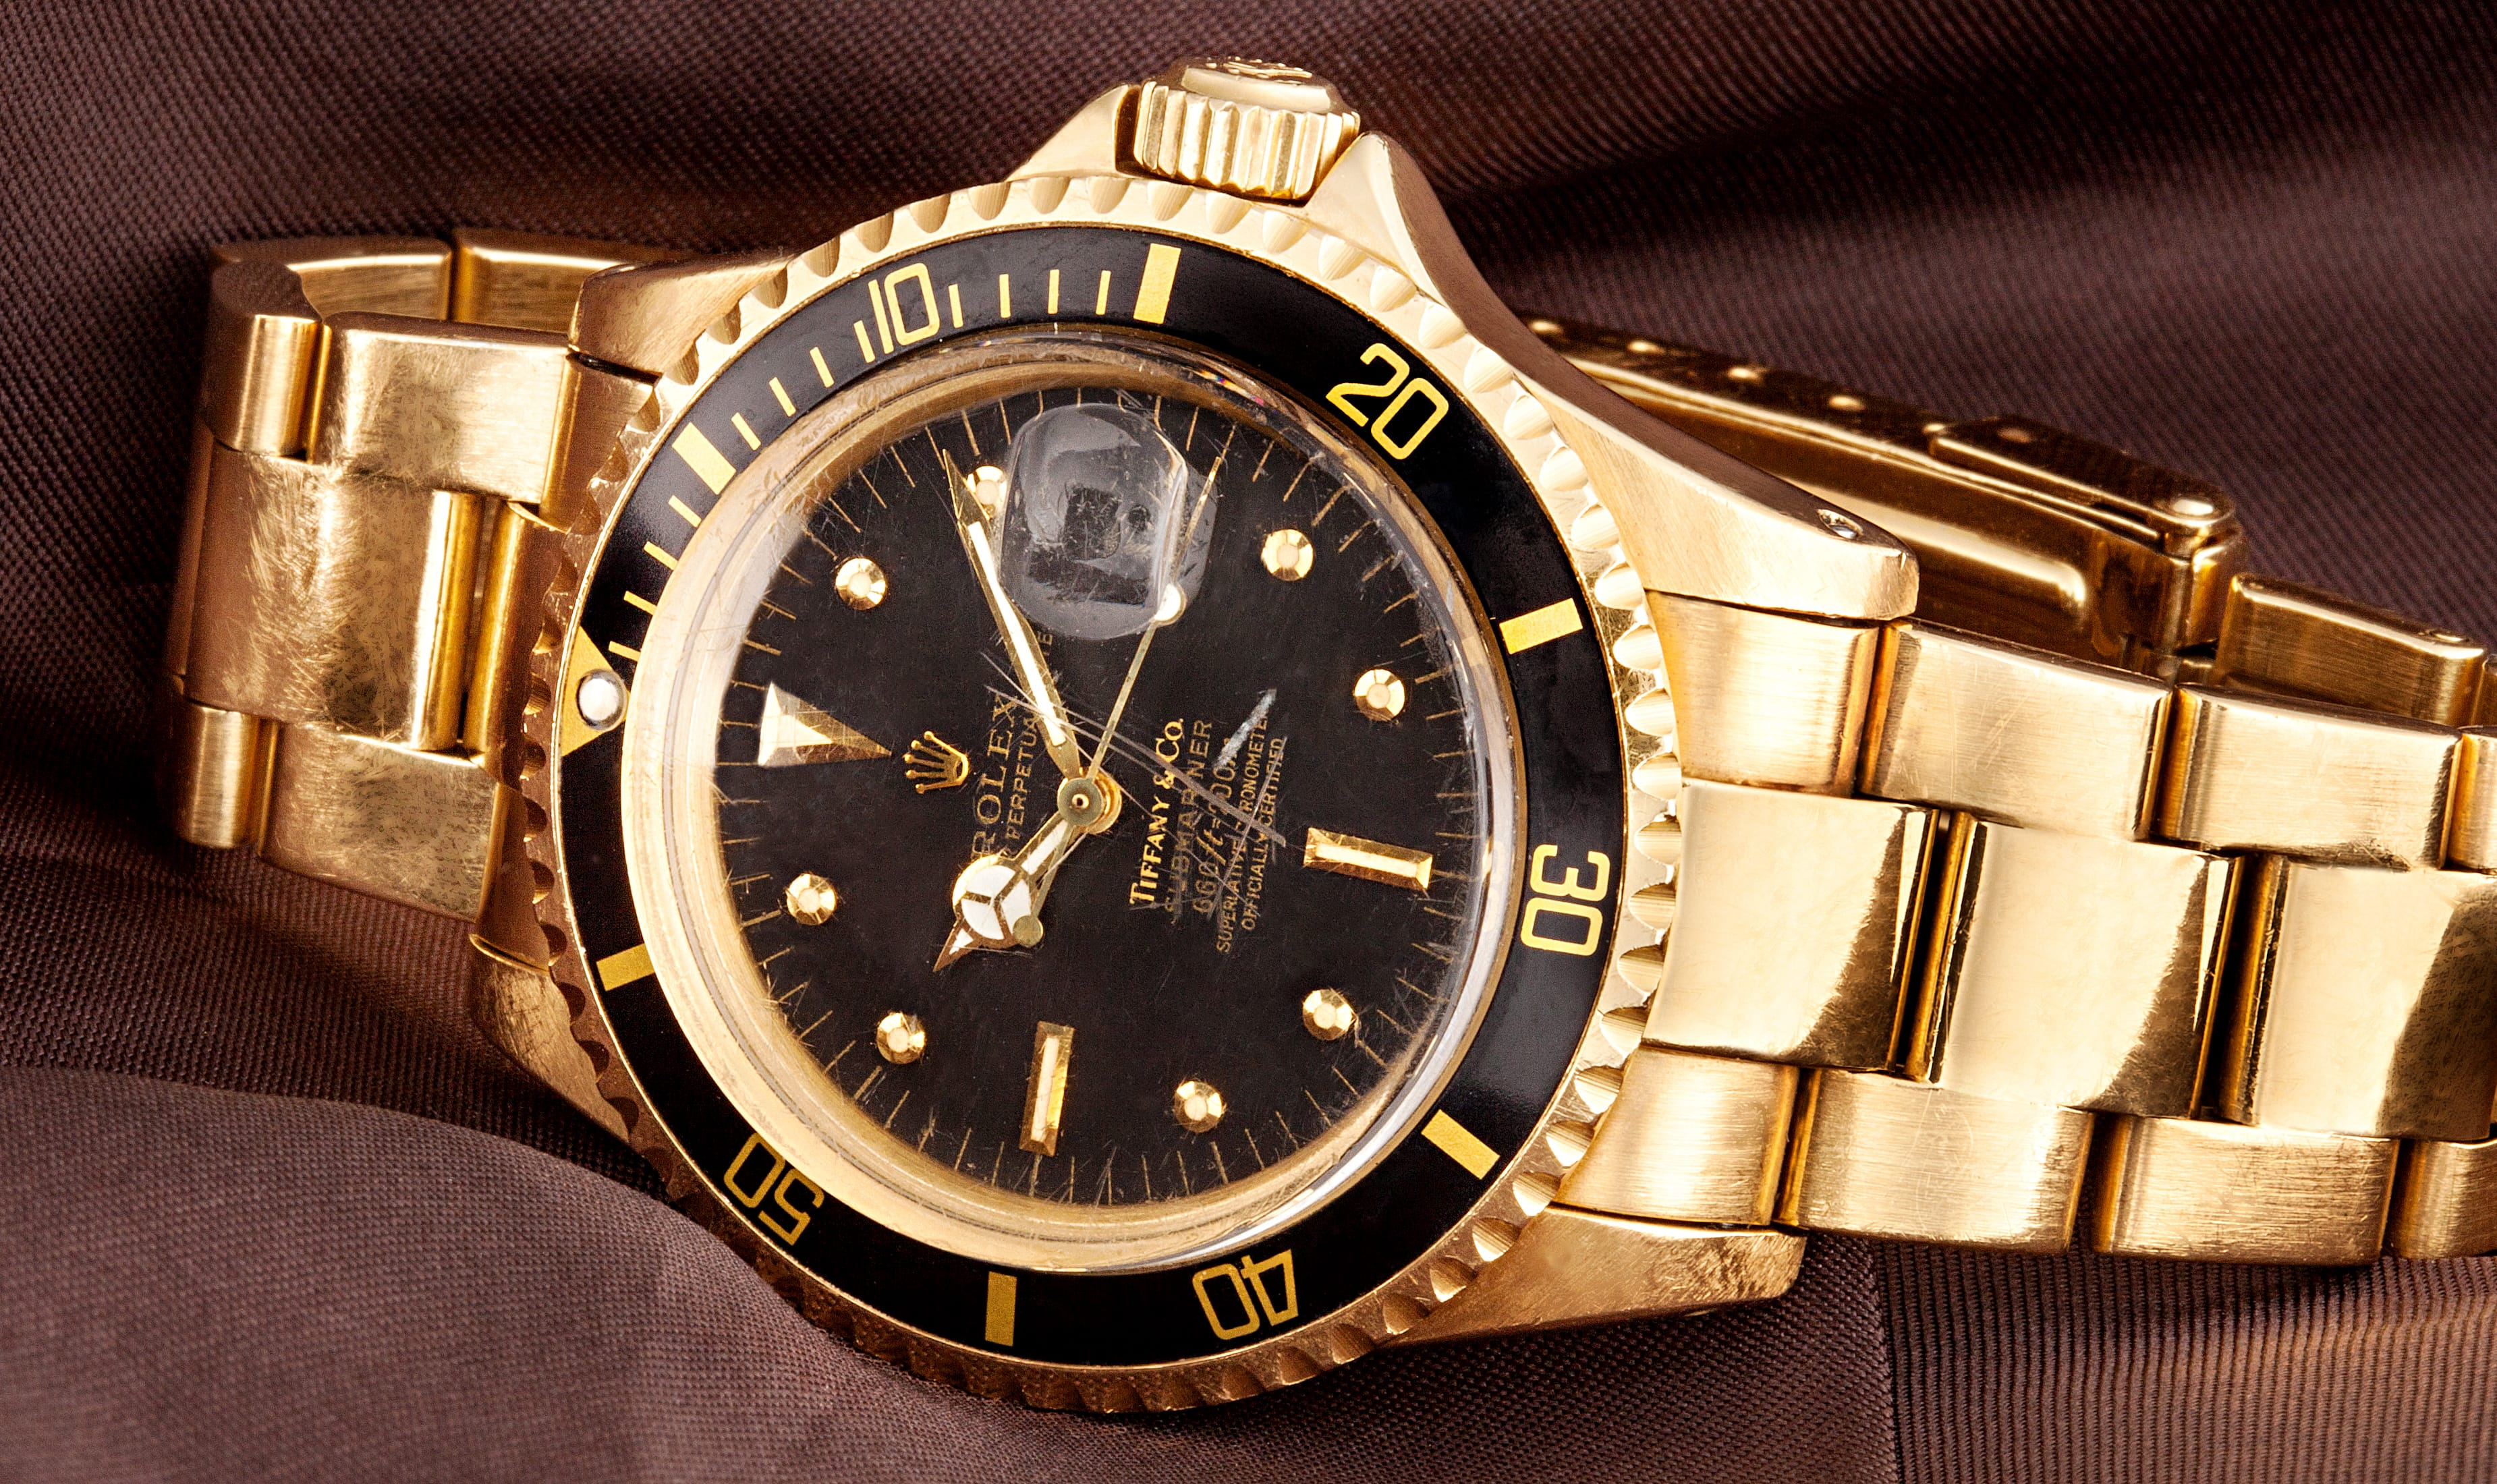 Vintage Of The Week: Gold Rolex Tiffany Submariner 1680